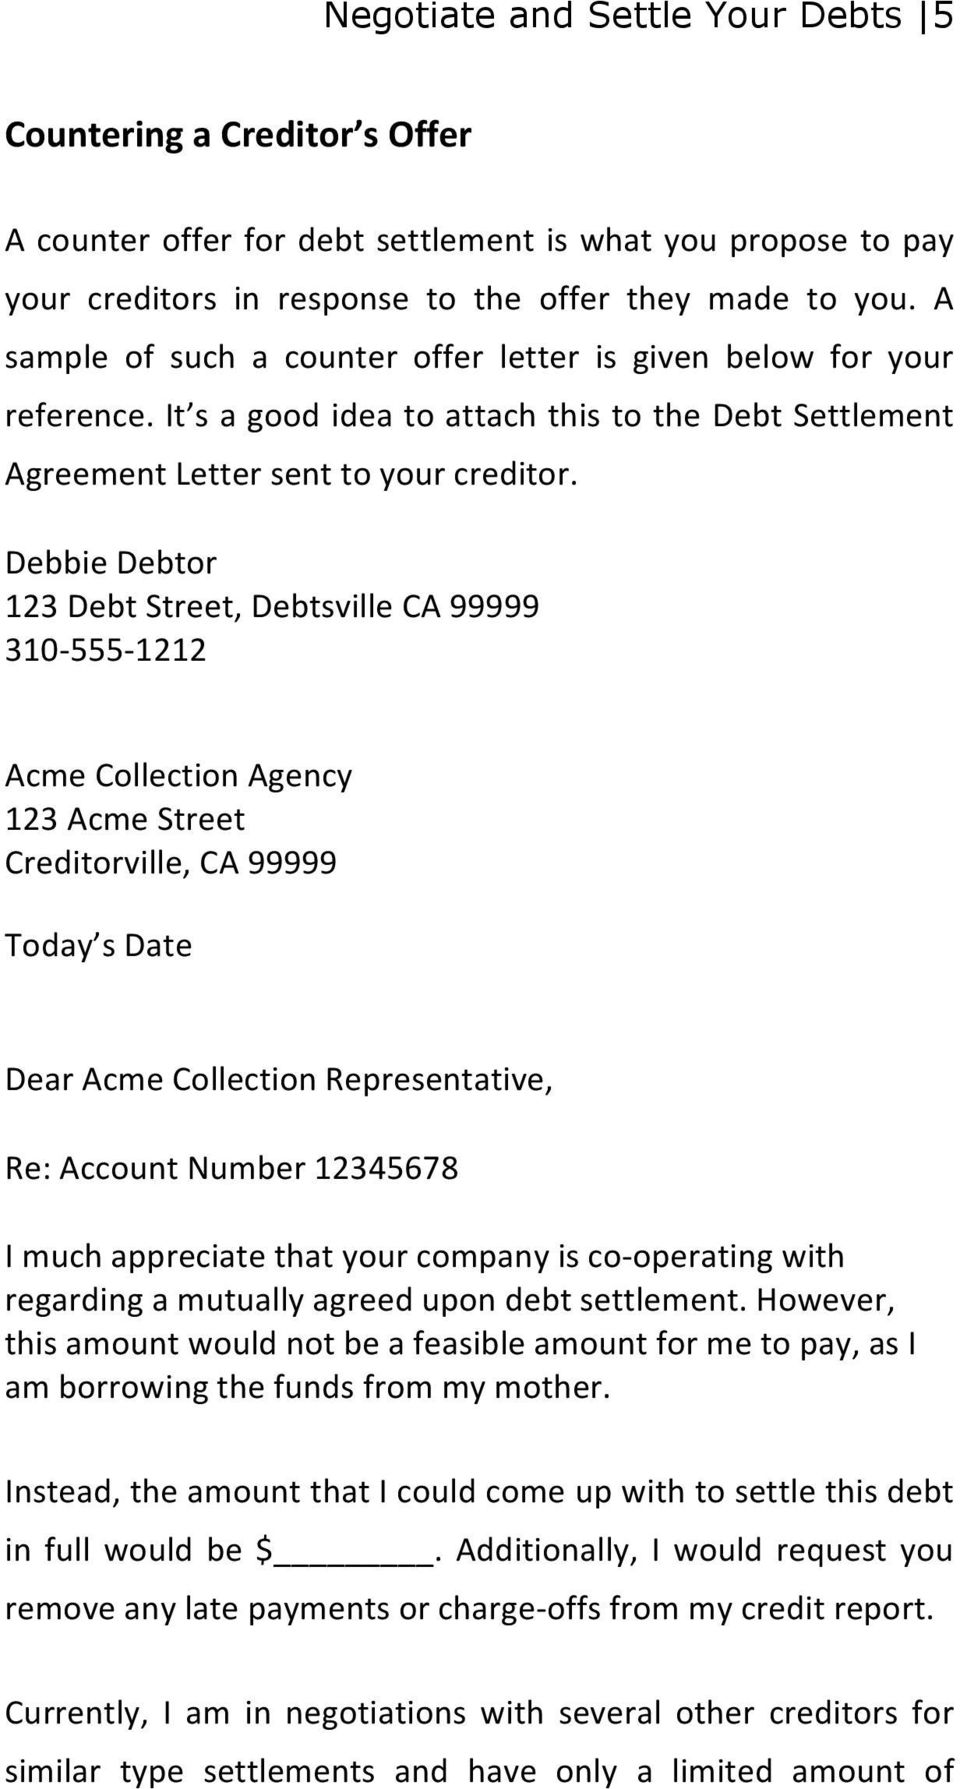 Sample letters settlement offer letter debbie debtor 123 debt debbie debtor 123 debt street debtsville ca 99999 310 555 1212 acme collection spiritdancerdesigns Gallery